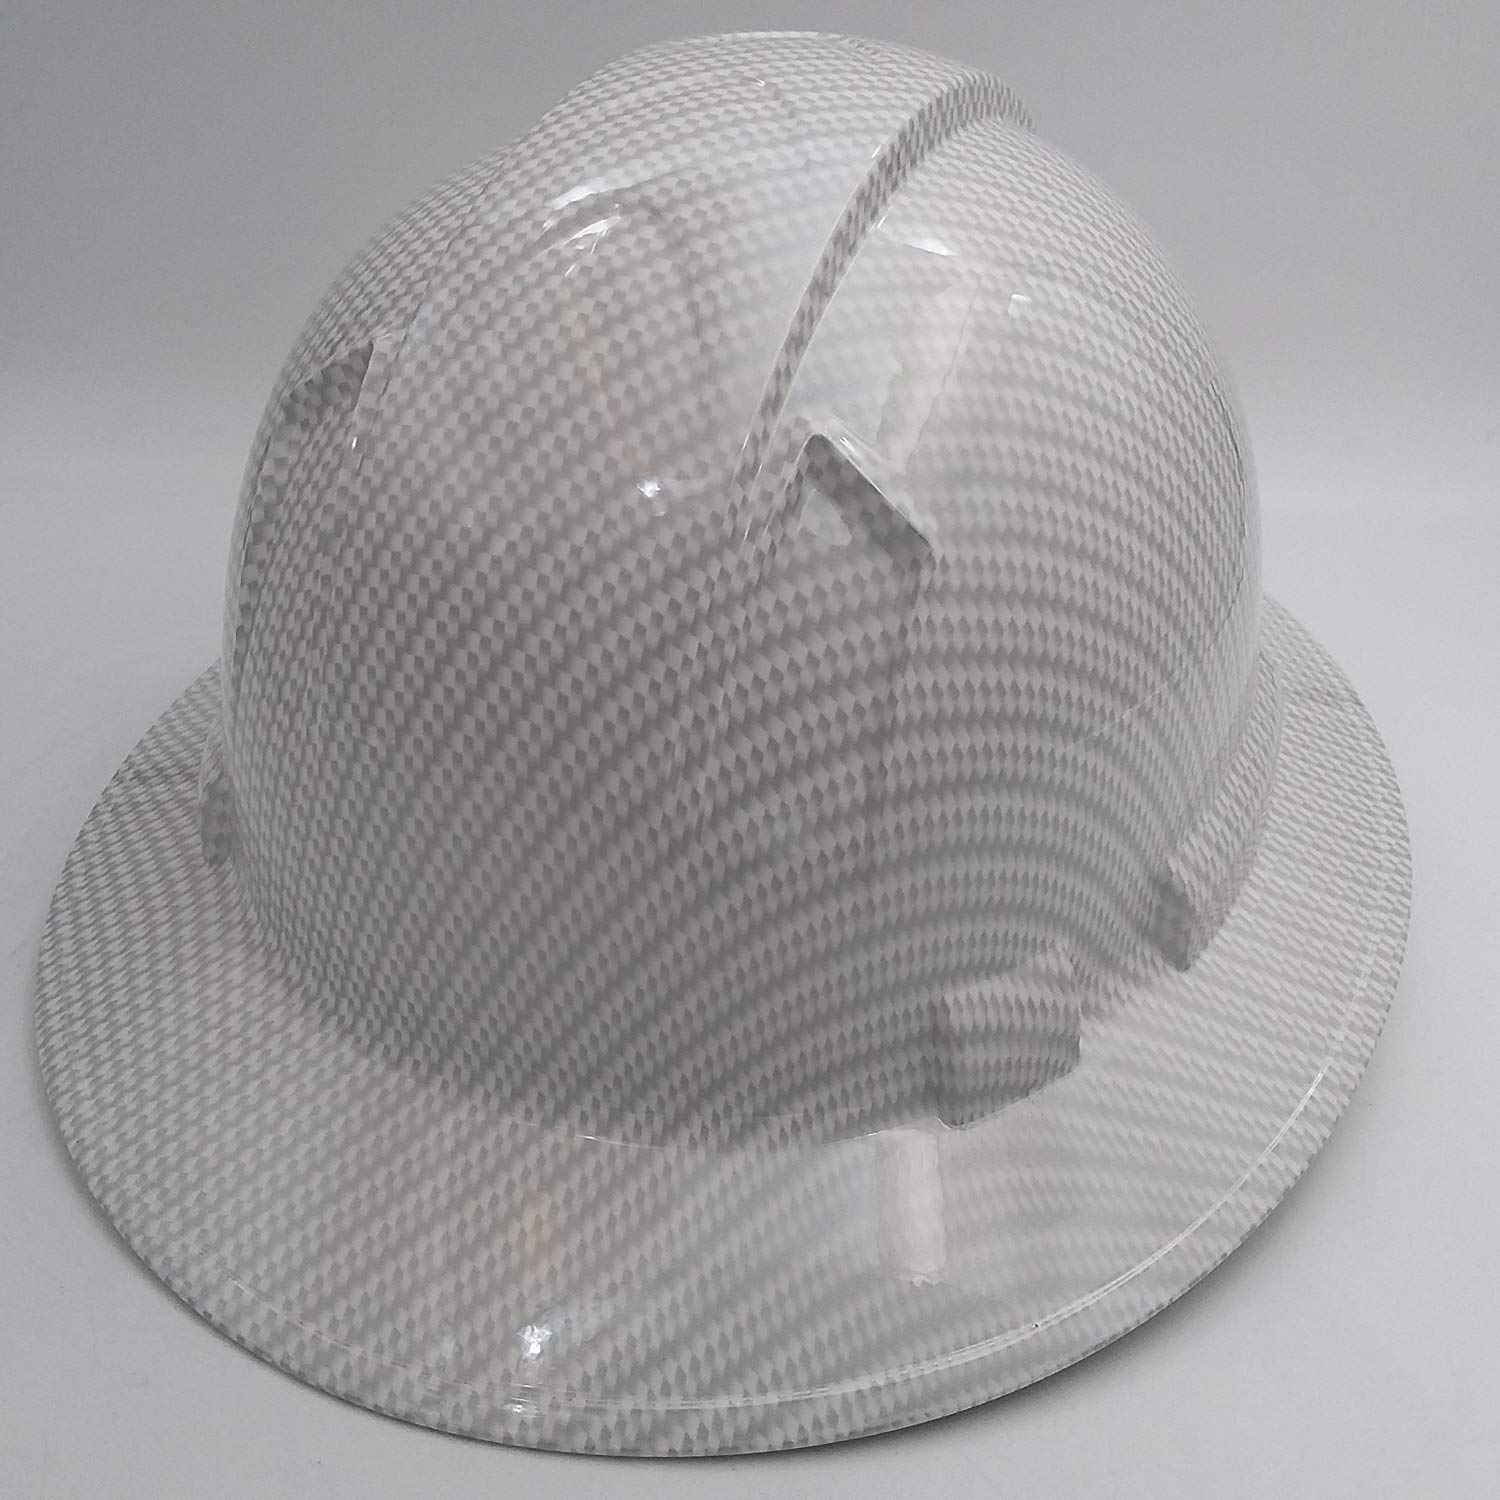 129cee2e Full Brim White Carbon Fiber Hard Hat with 4-Point Suspension For ...